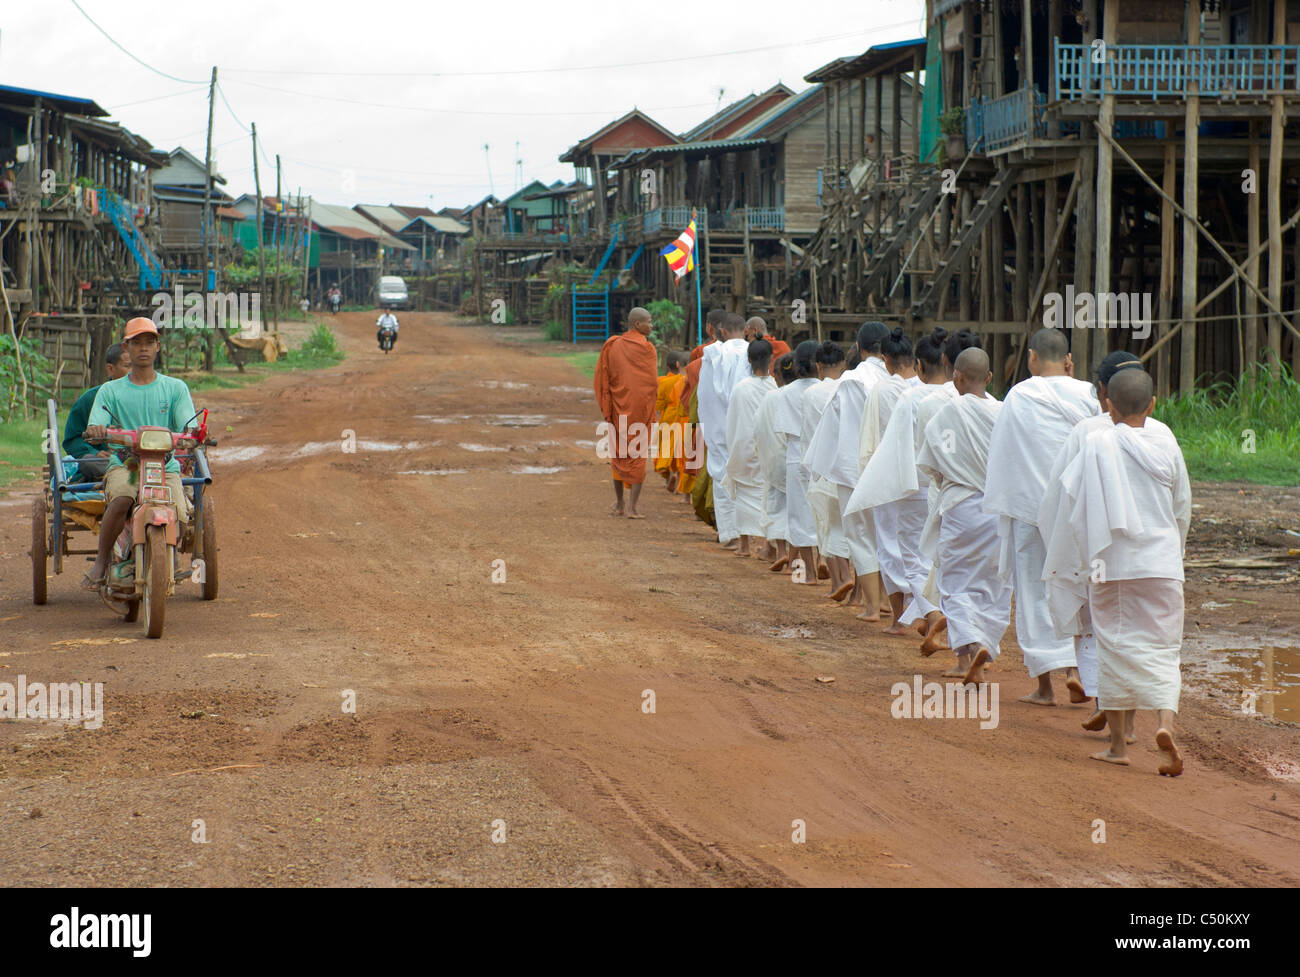 Buddhist monks and nuns on their morning alms round, Kompong Klang, on the shore of Tonle Sap lake, near Siem Reap, Stock Photo